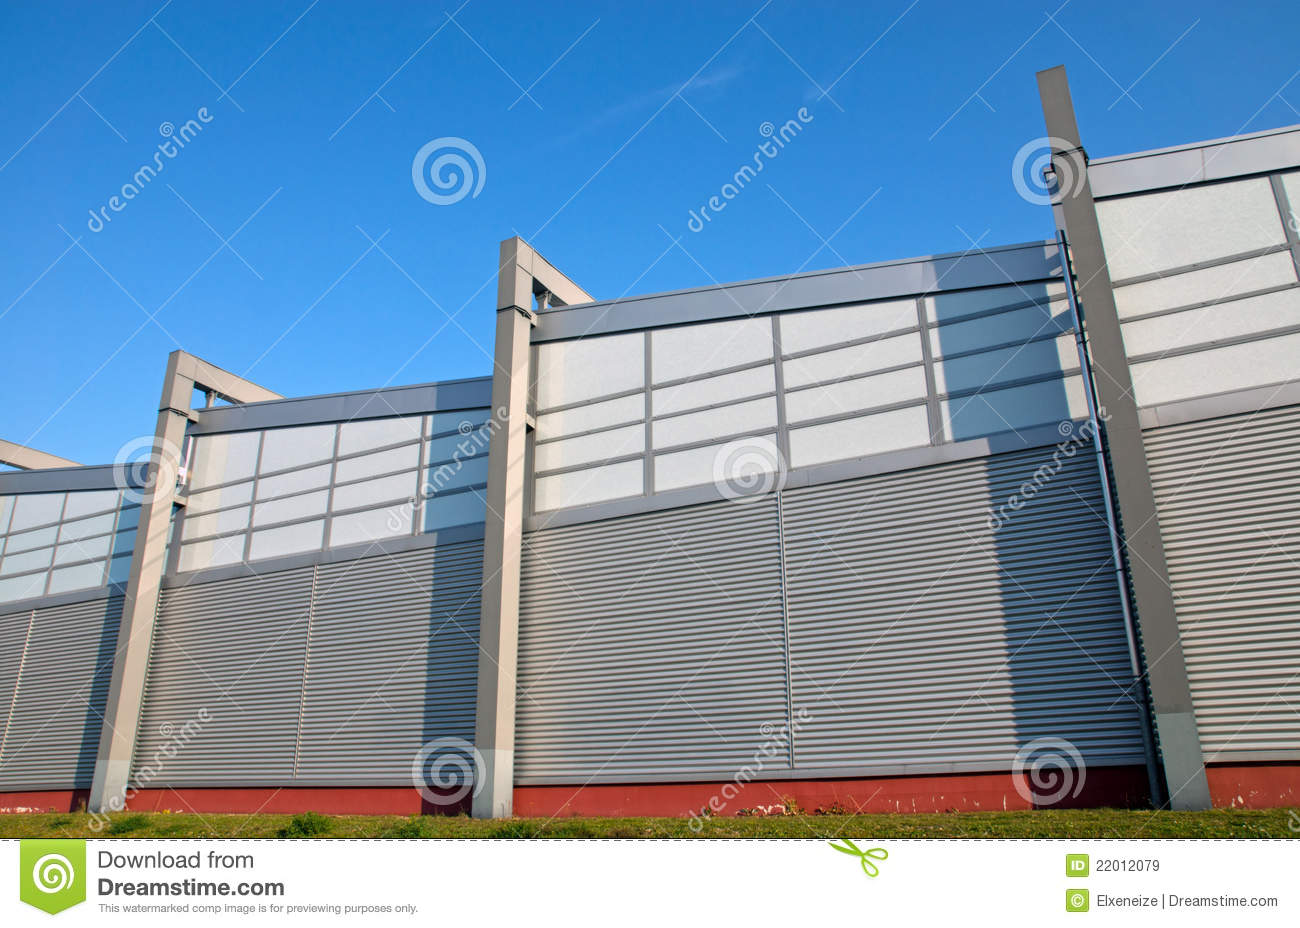 20 Industrial Design Modern Building Facade Images